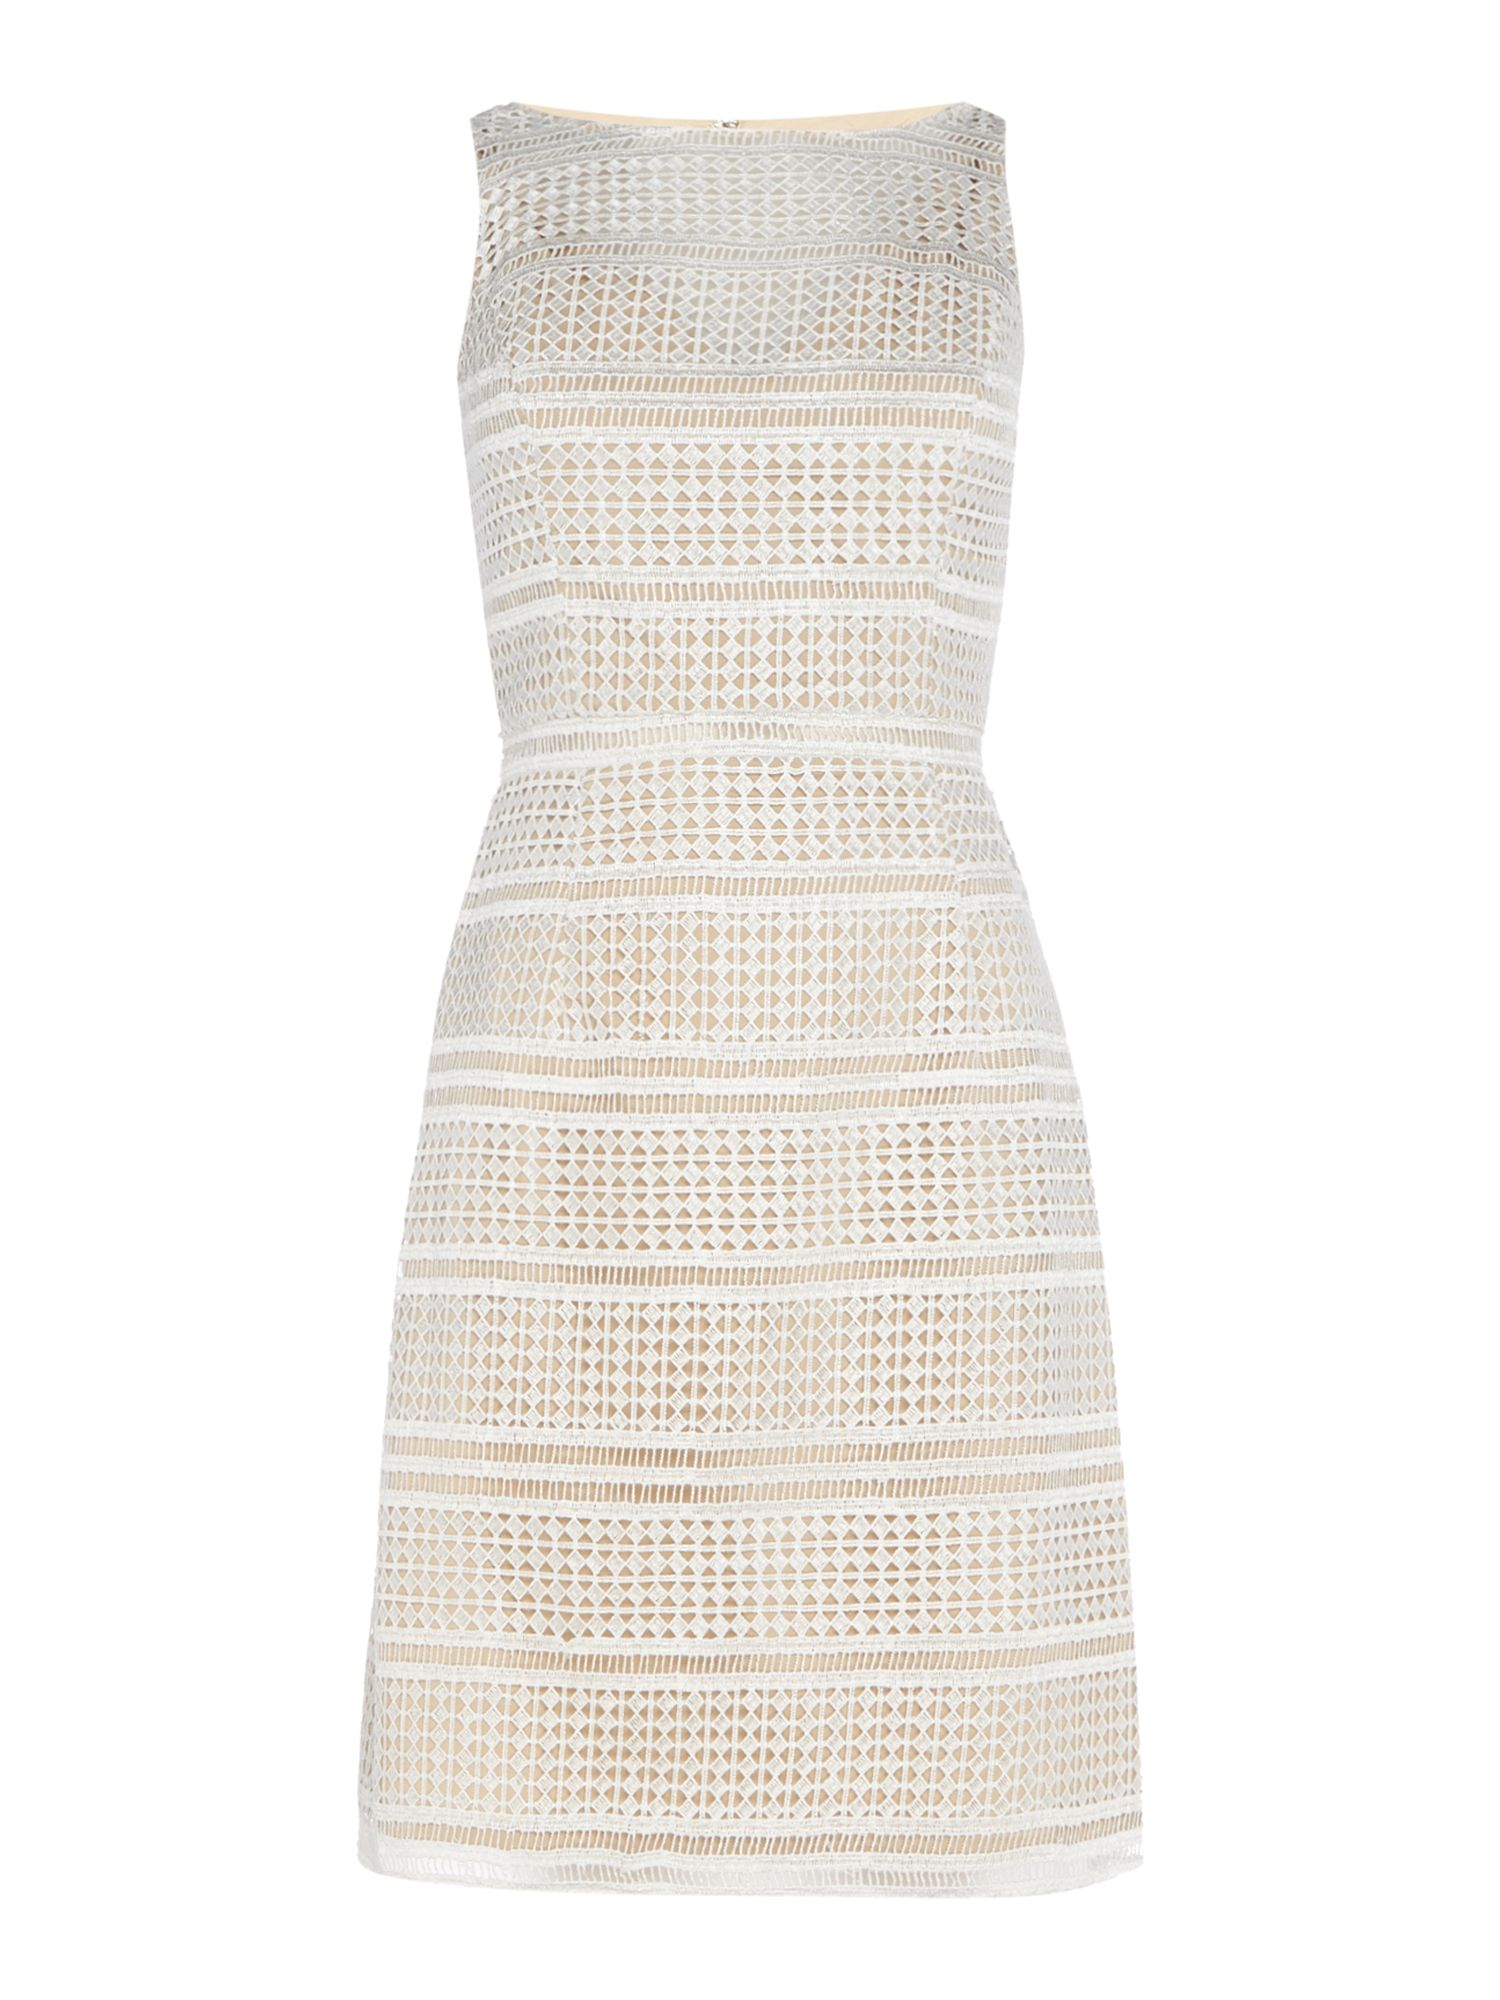 Adrianna Papell Sleeveless lace shift dress, White